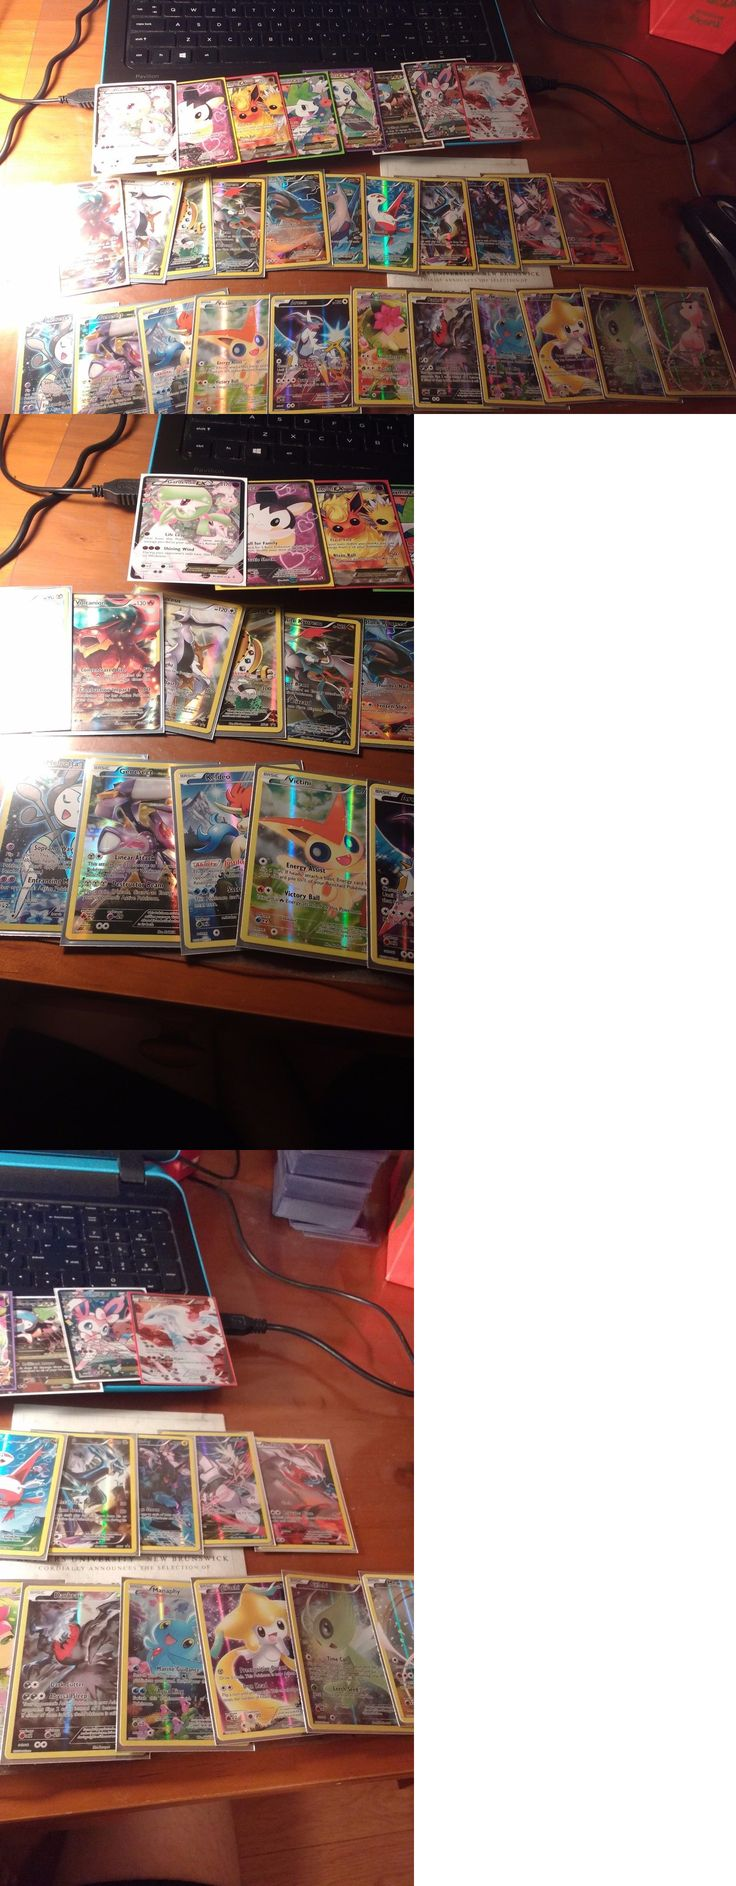 Pok mon Mixed Card Lots 104049: Pokemon Full Art Ex Promo Collection Lot! -> BUY IT NOW ONLY: $75 on eBay!